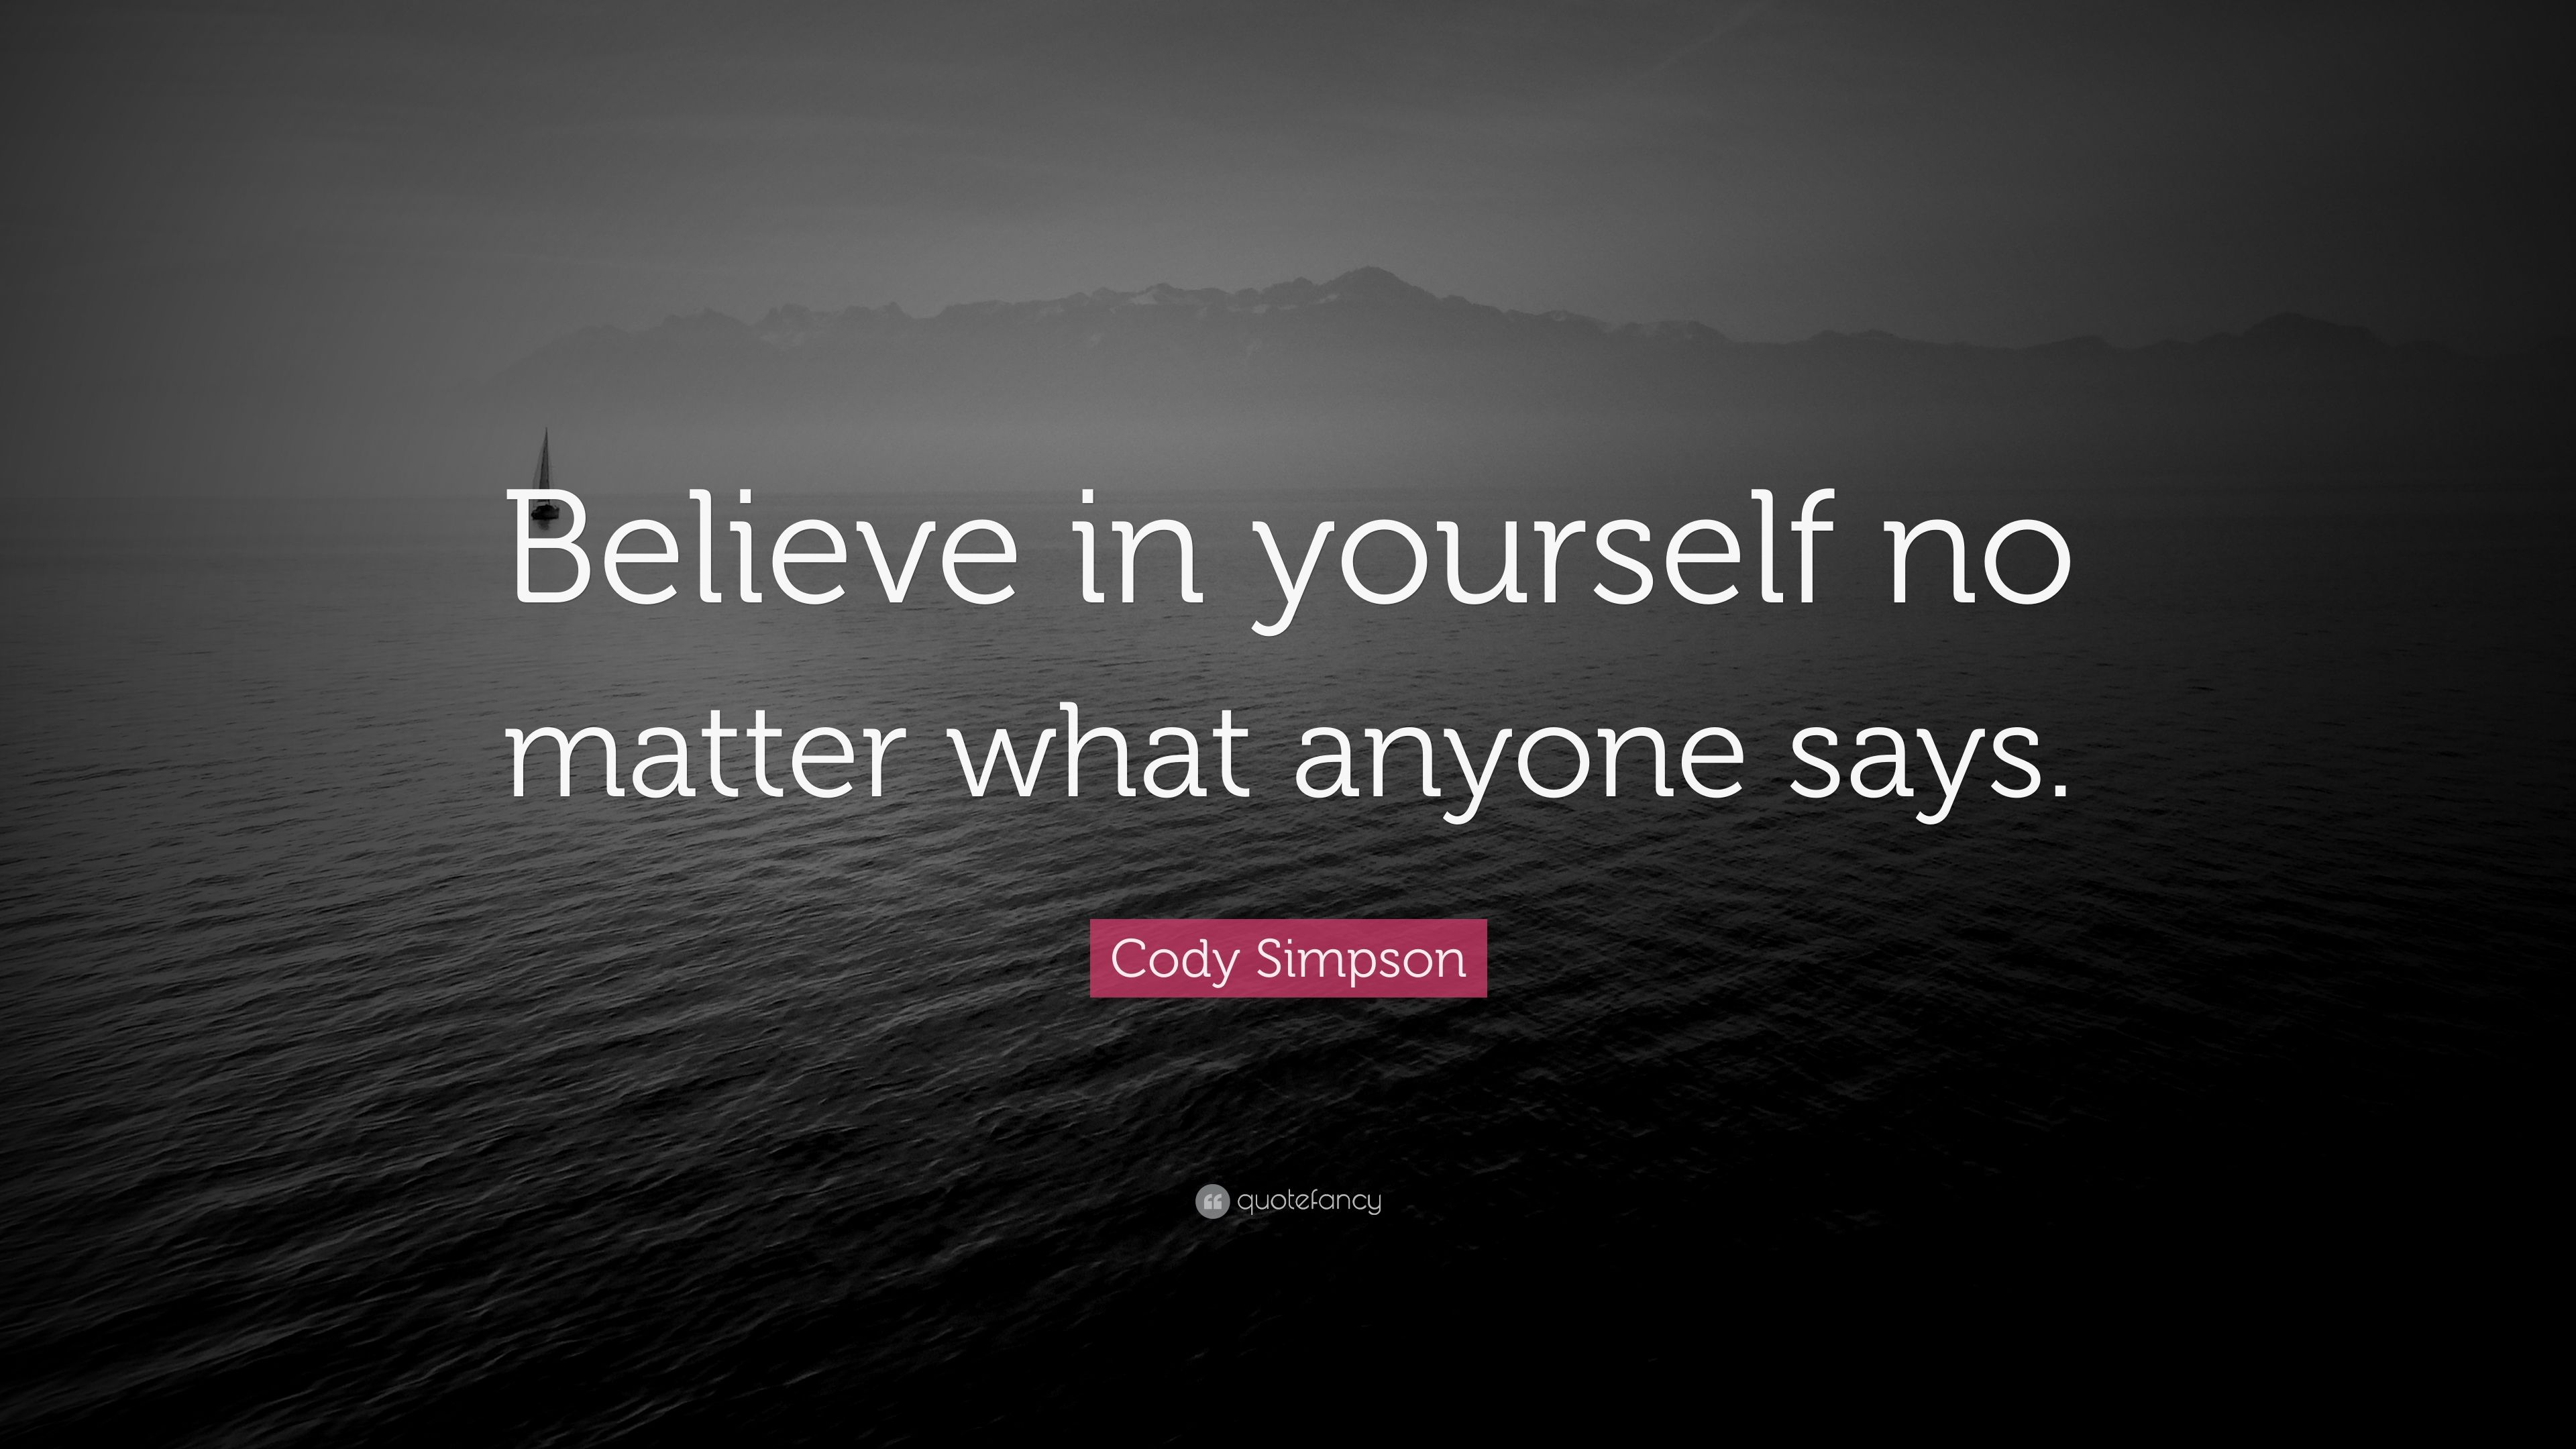 Believing In Yourself Quotes | Cody Simpson Quote Believe In Yourself No Matter What Anyone Says